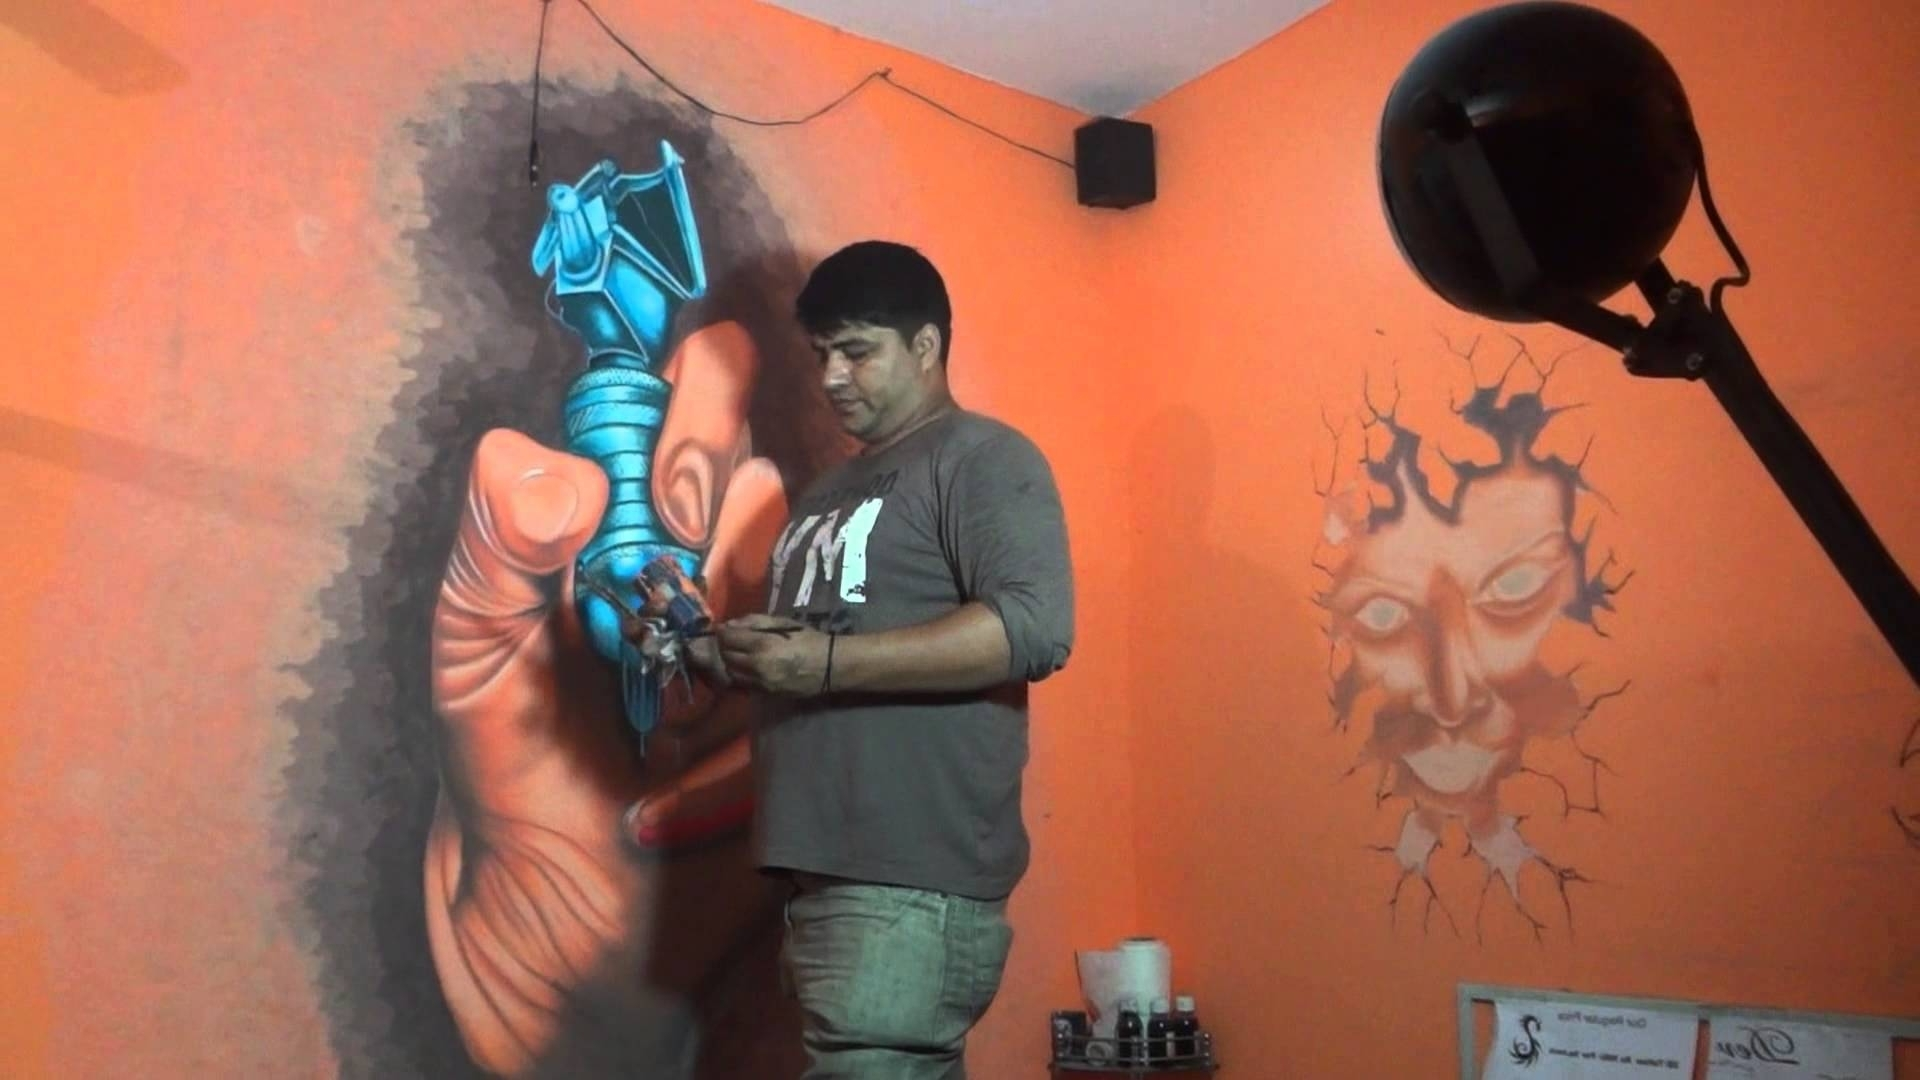 Tattoo Shop Wall Artdev 9313666999 – Youtube With Most Up To Date Tattoo Wall Art (View 13 of 15)